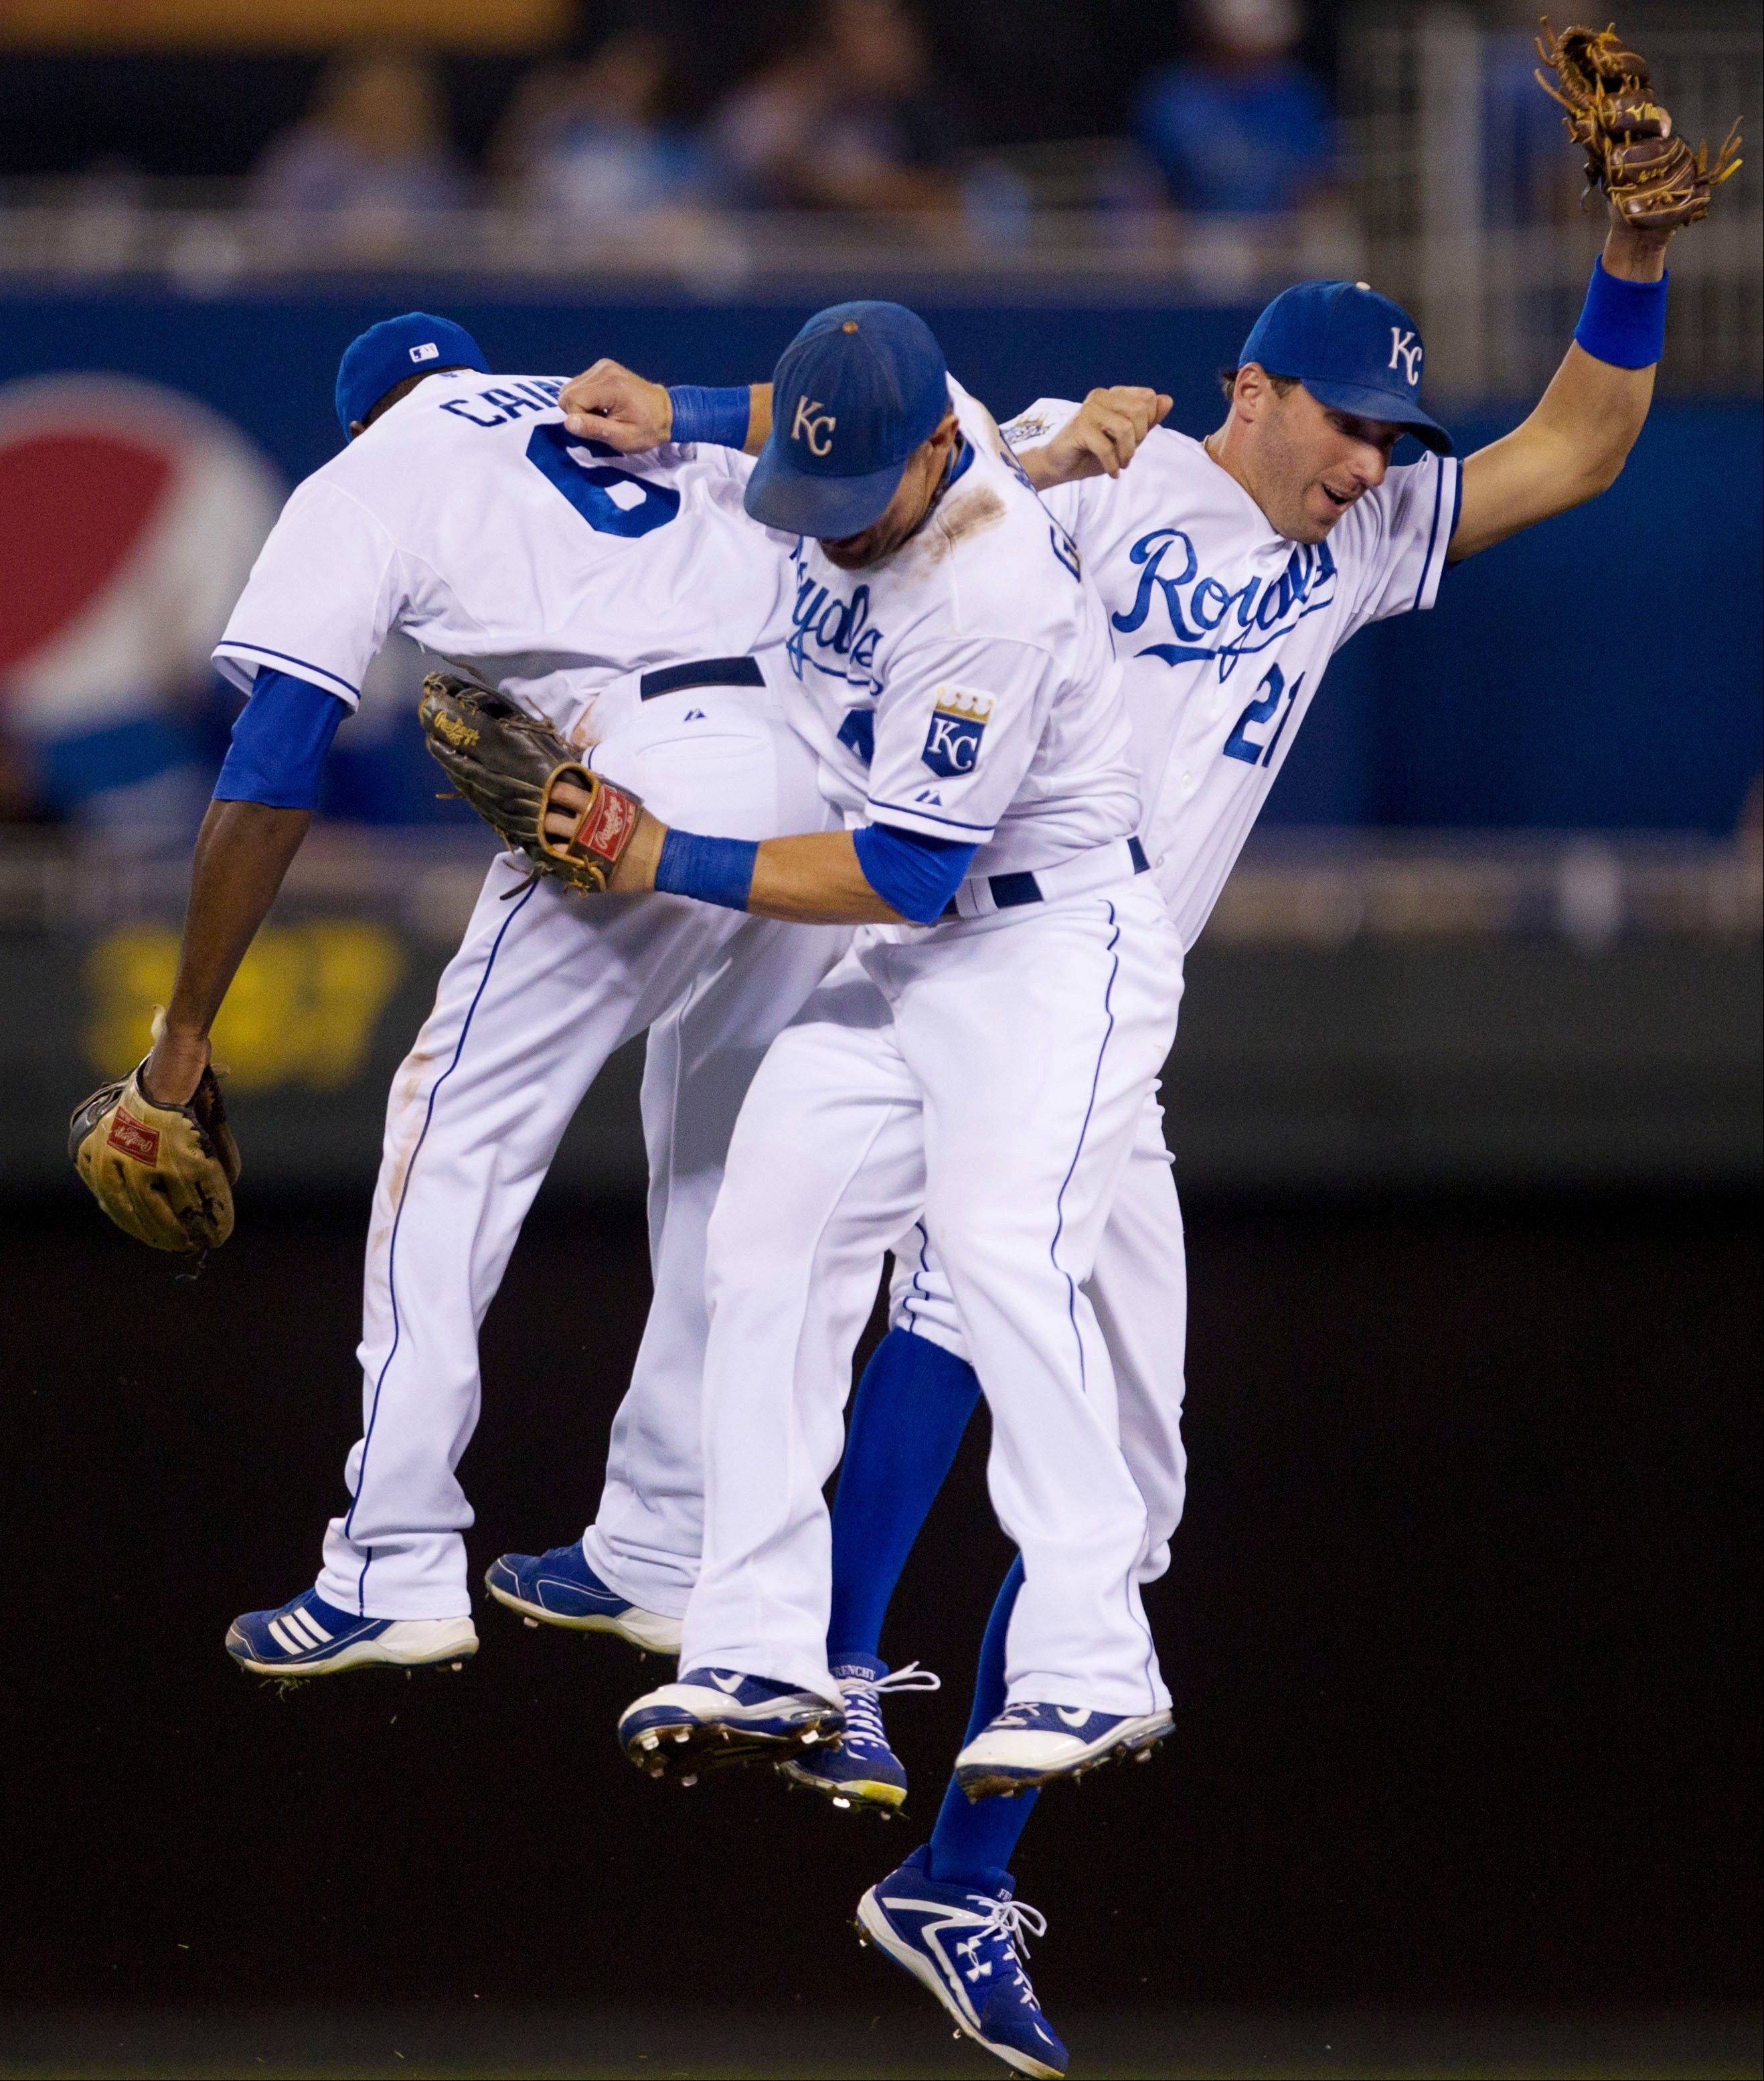 Kansas City Royals outfielders Alex Gordon (4), Lorenzo Cain (6) and Jeff Francoeur (21) celebrate Friday after beating the White Sox at Kauffman Stadium.